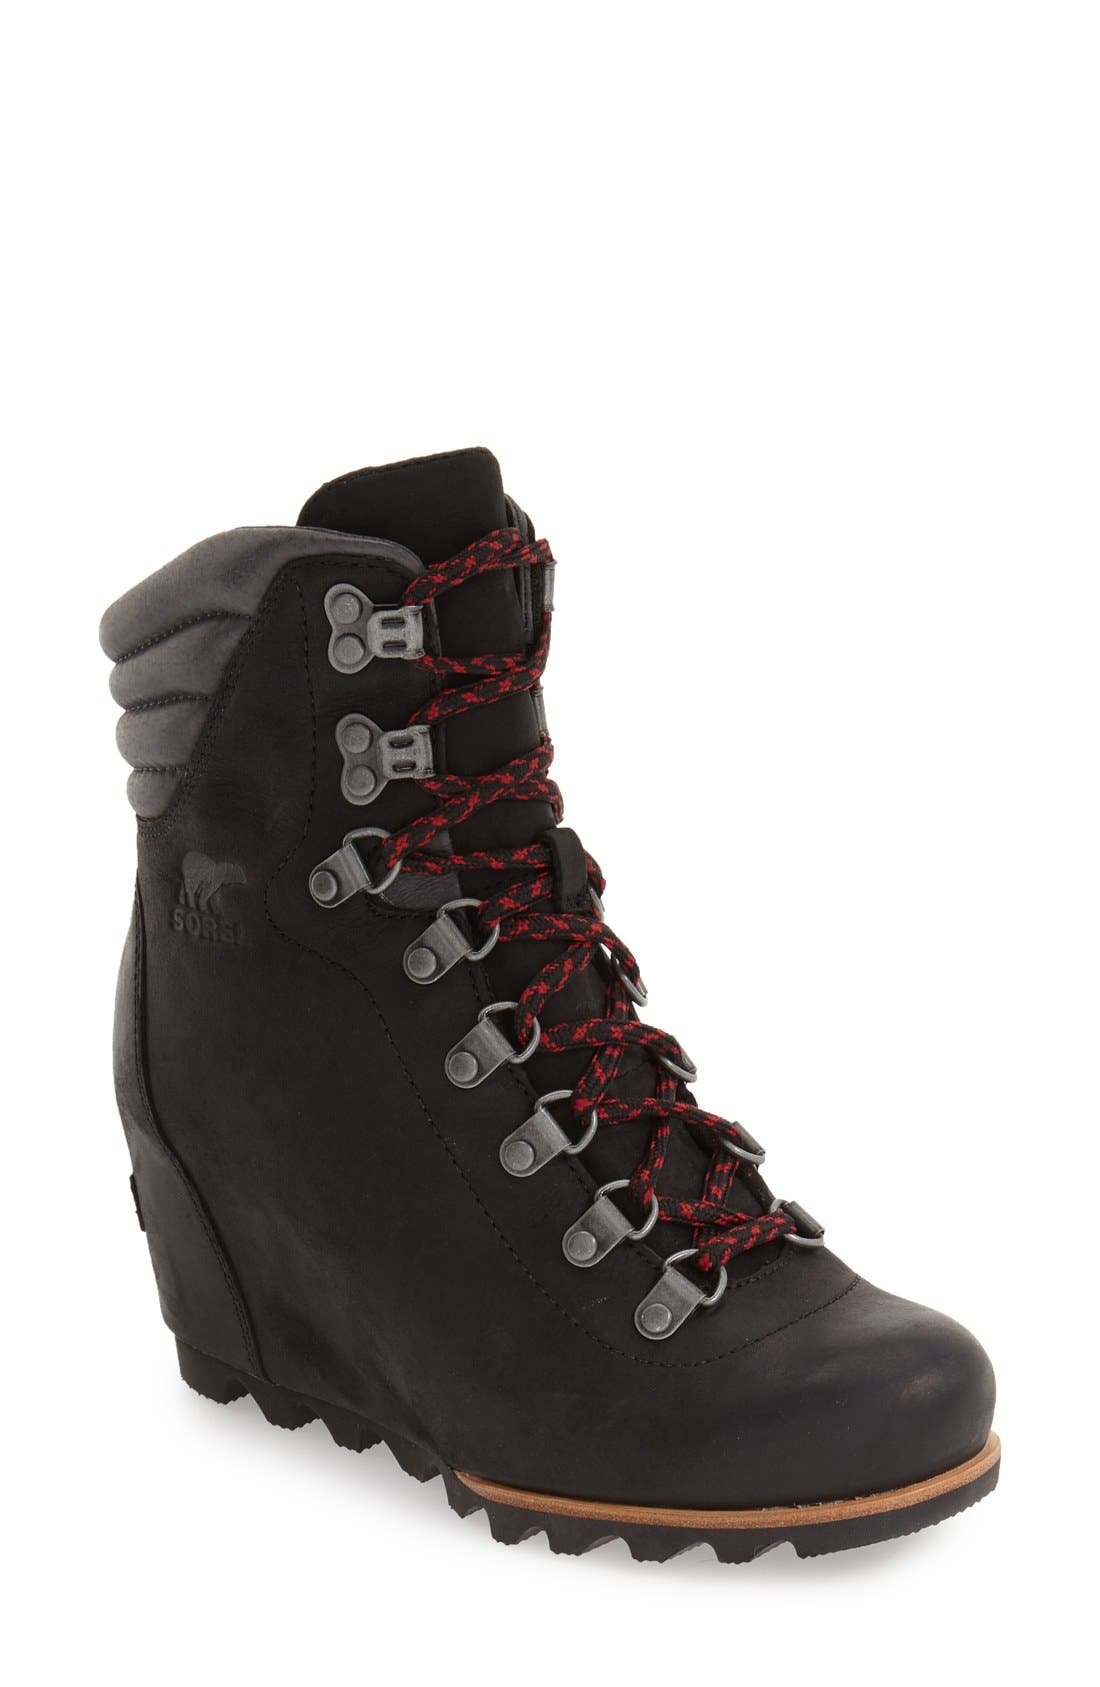 'Conquest' Waterproof Wedge Boot,                             Main thumbnail 1, color,                             010